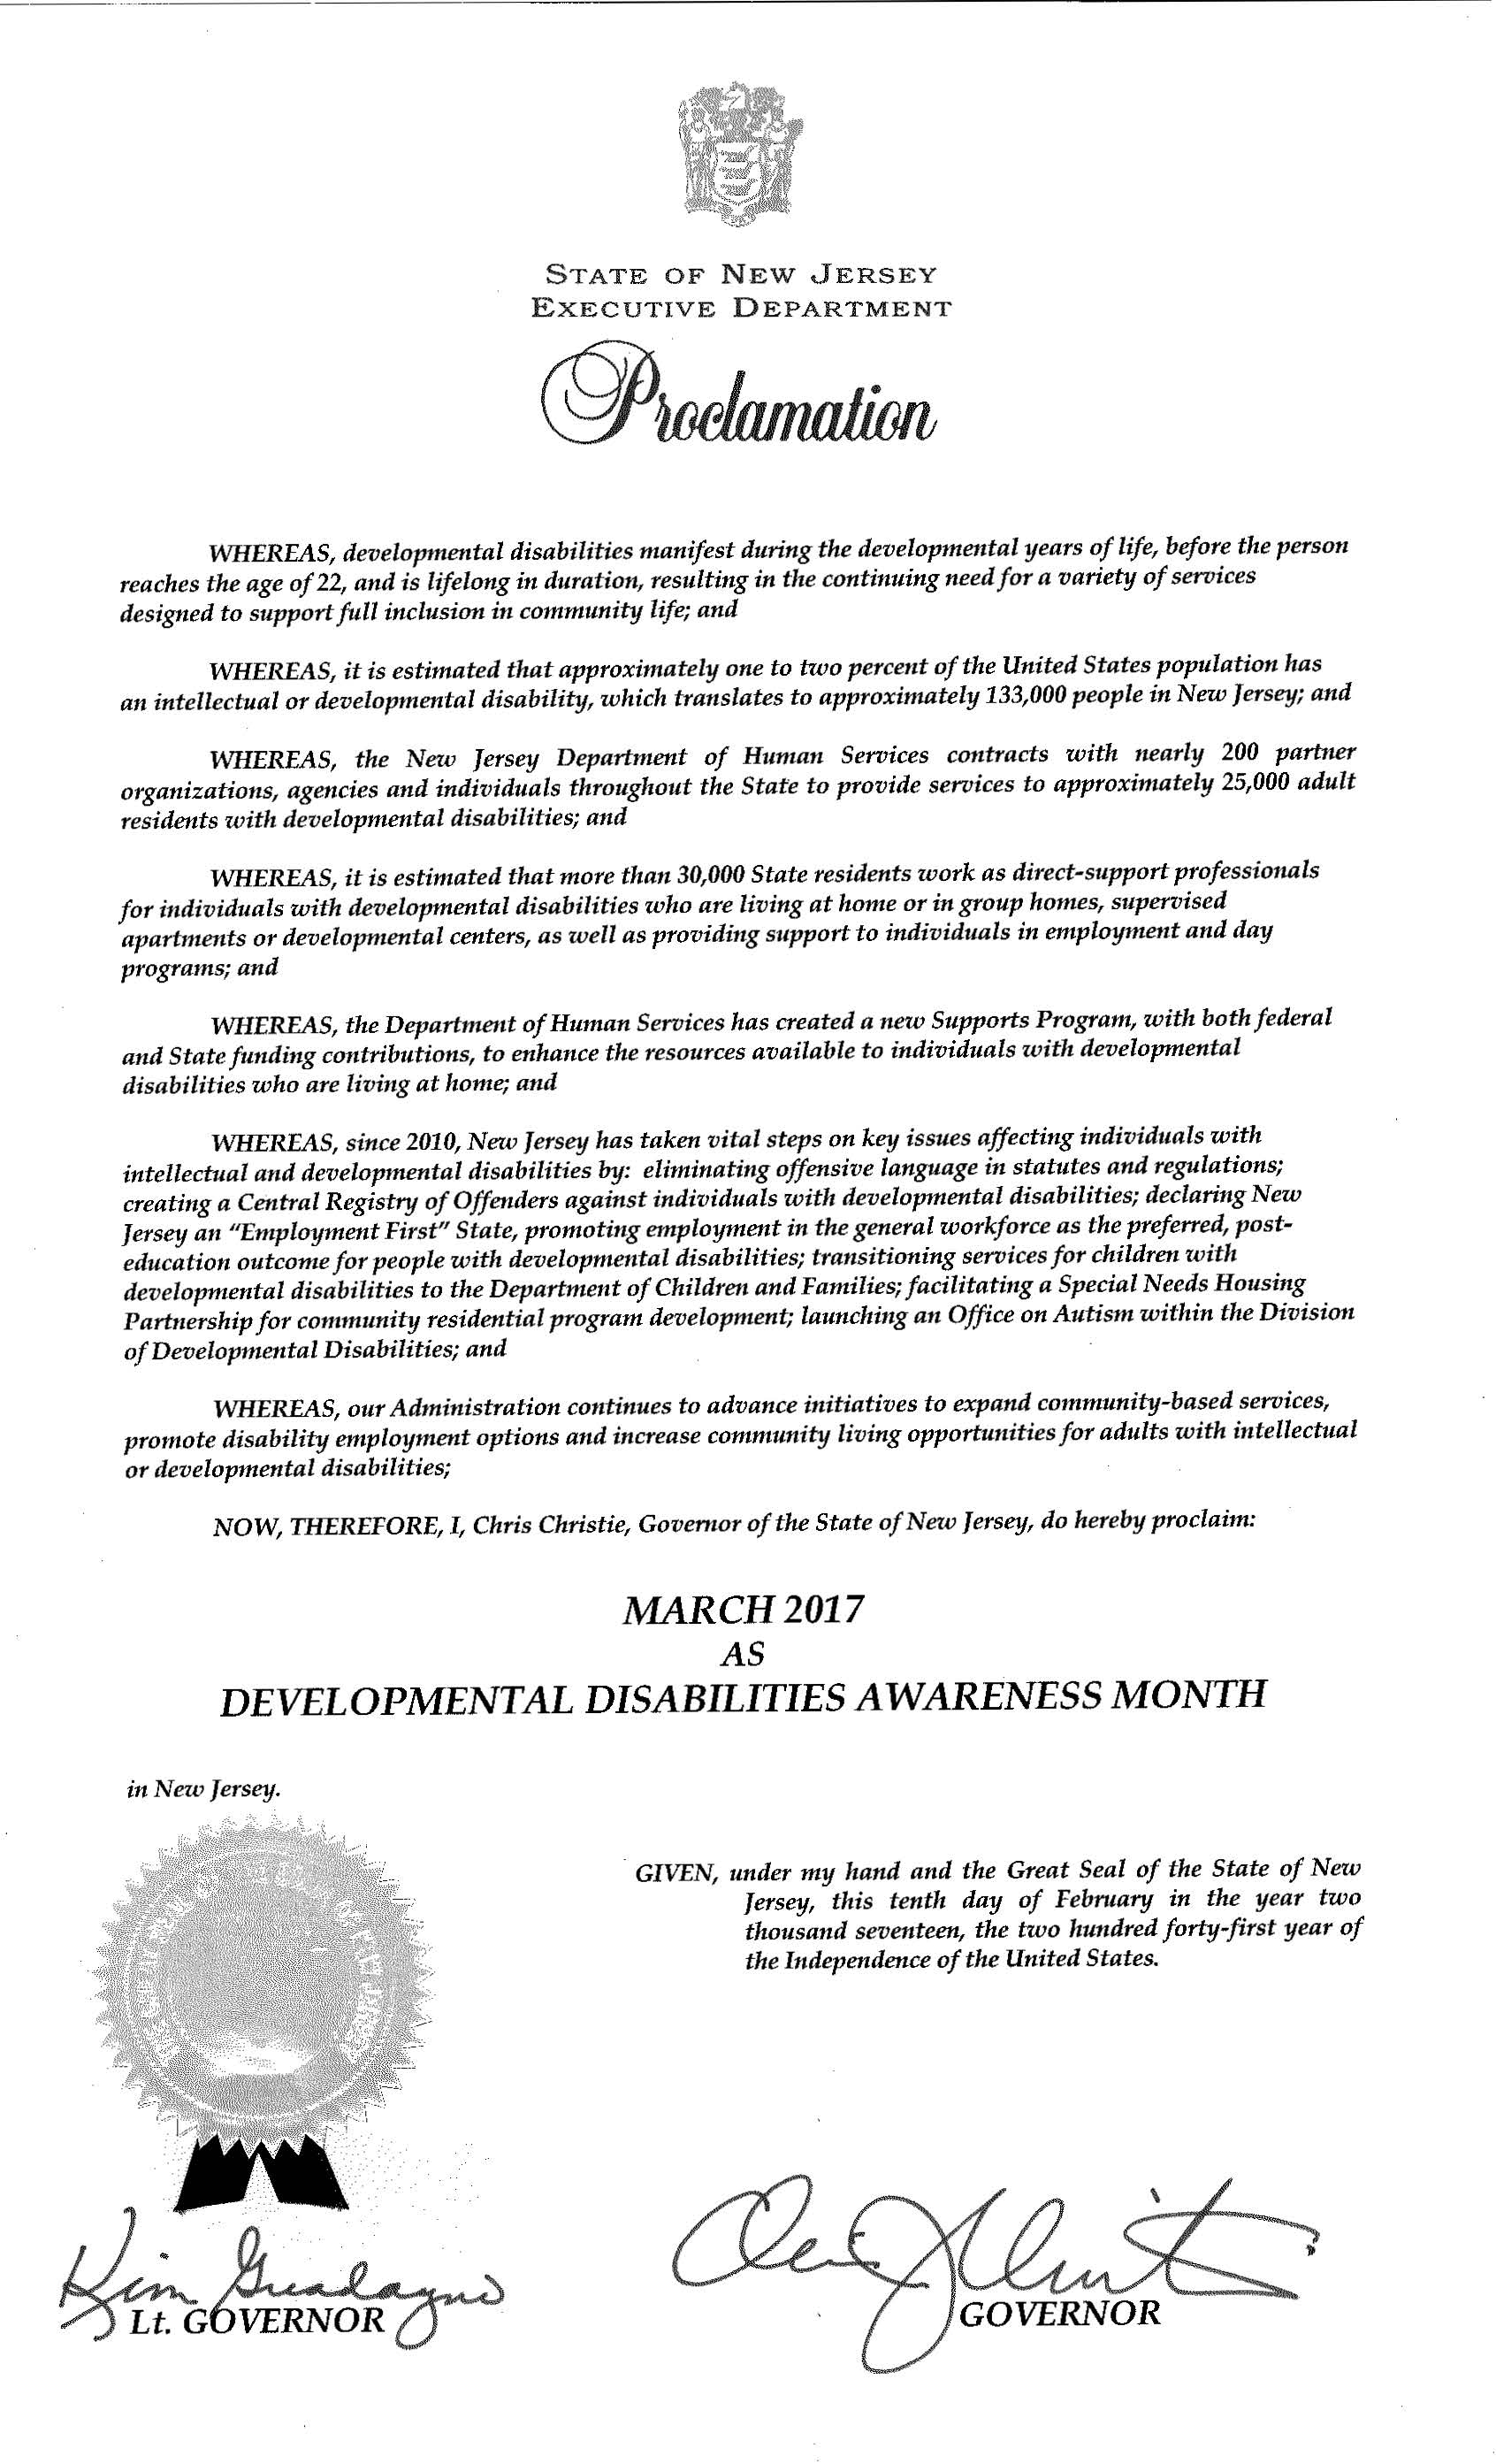 State of New Jersey Proclamation: March as DD Awareness Month